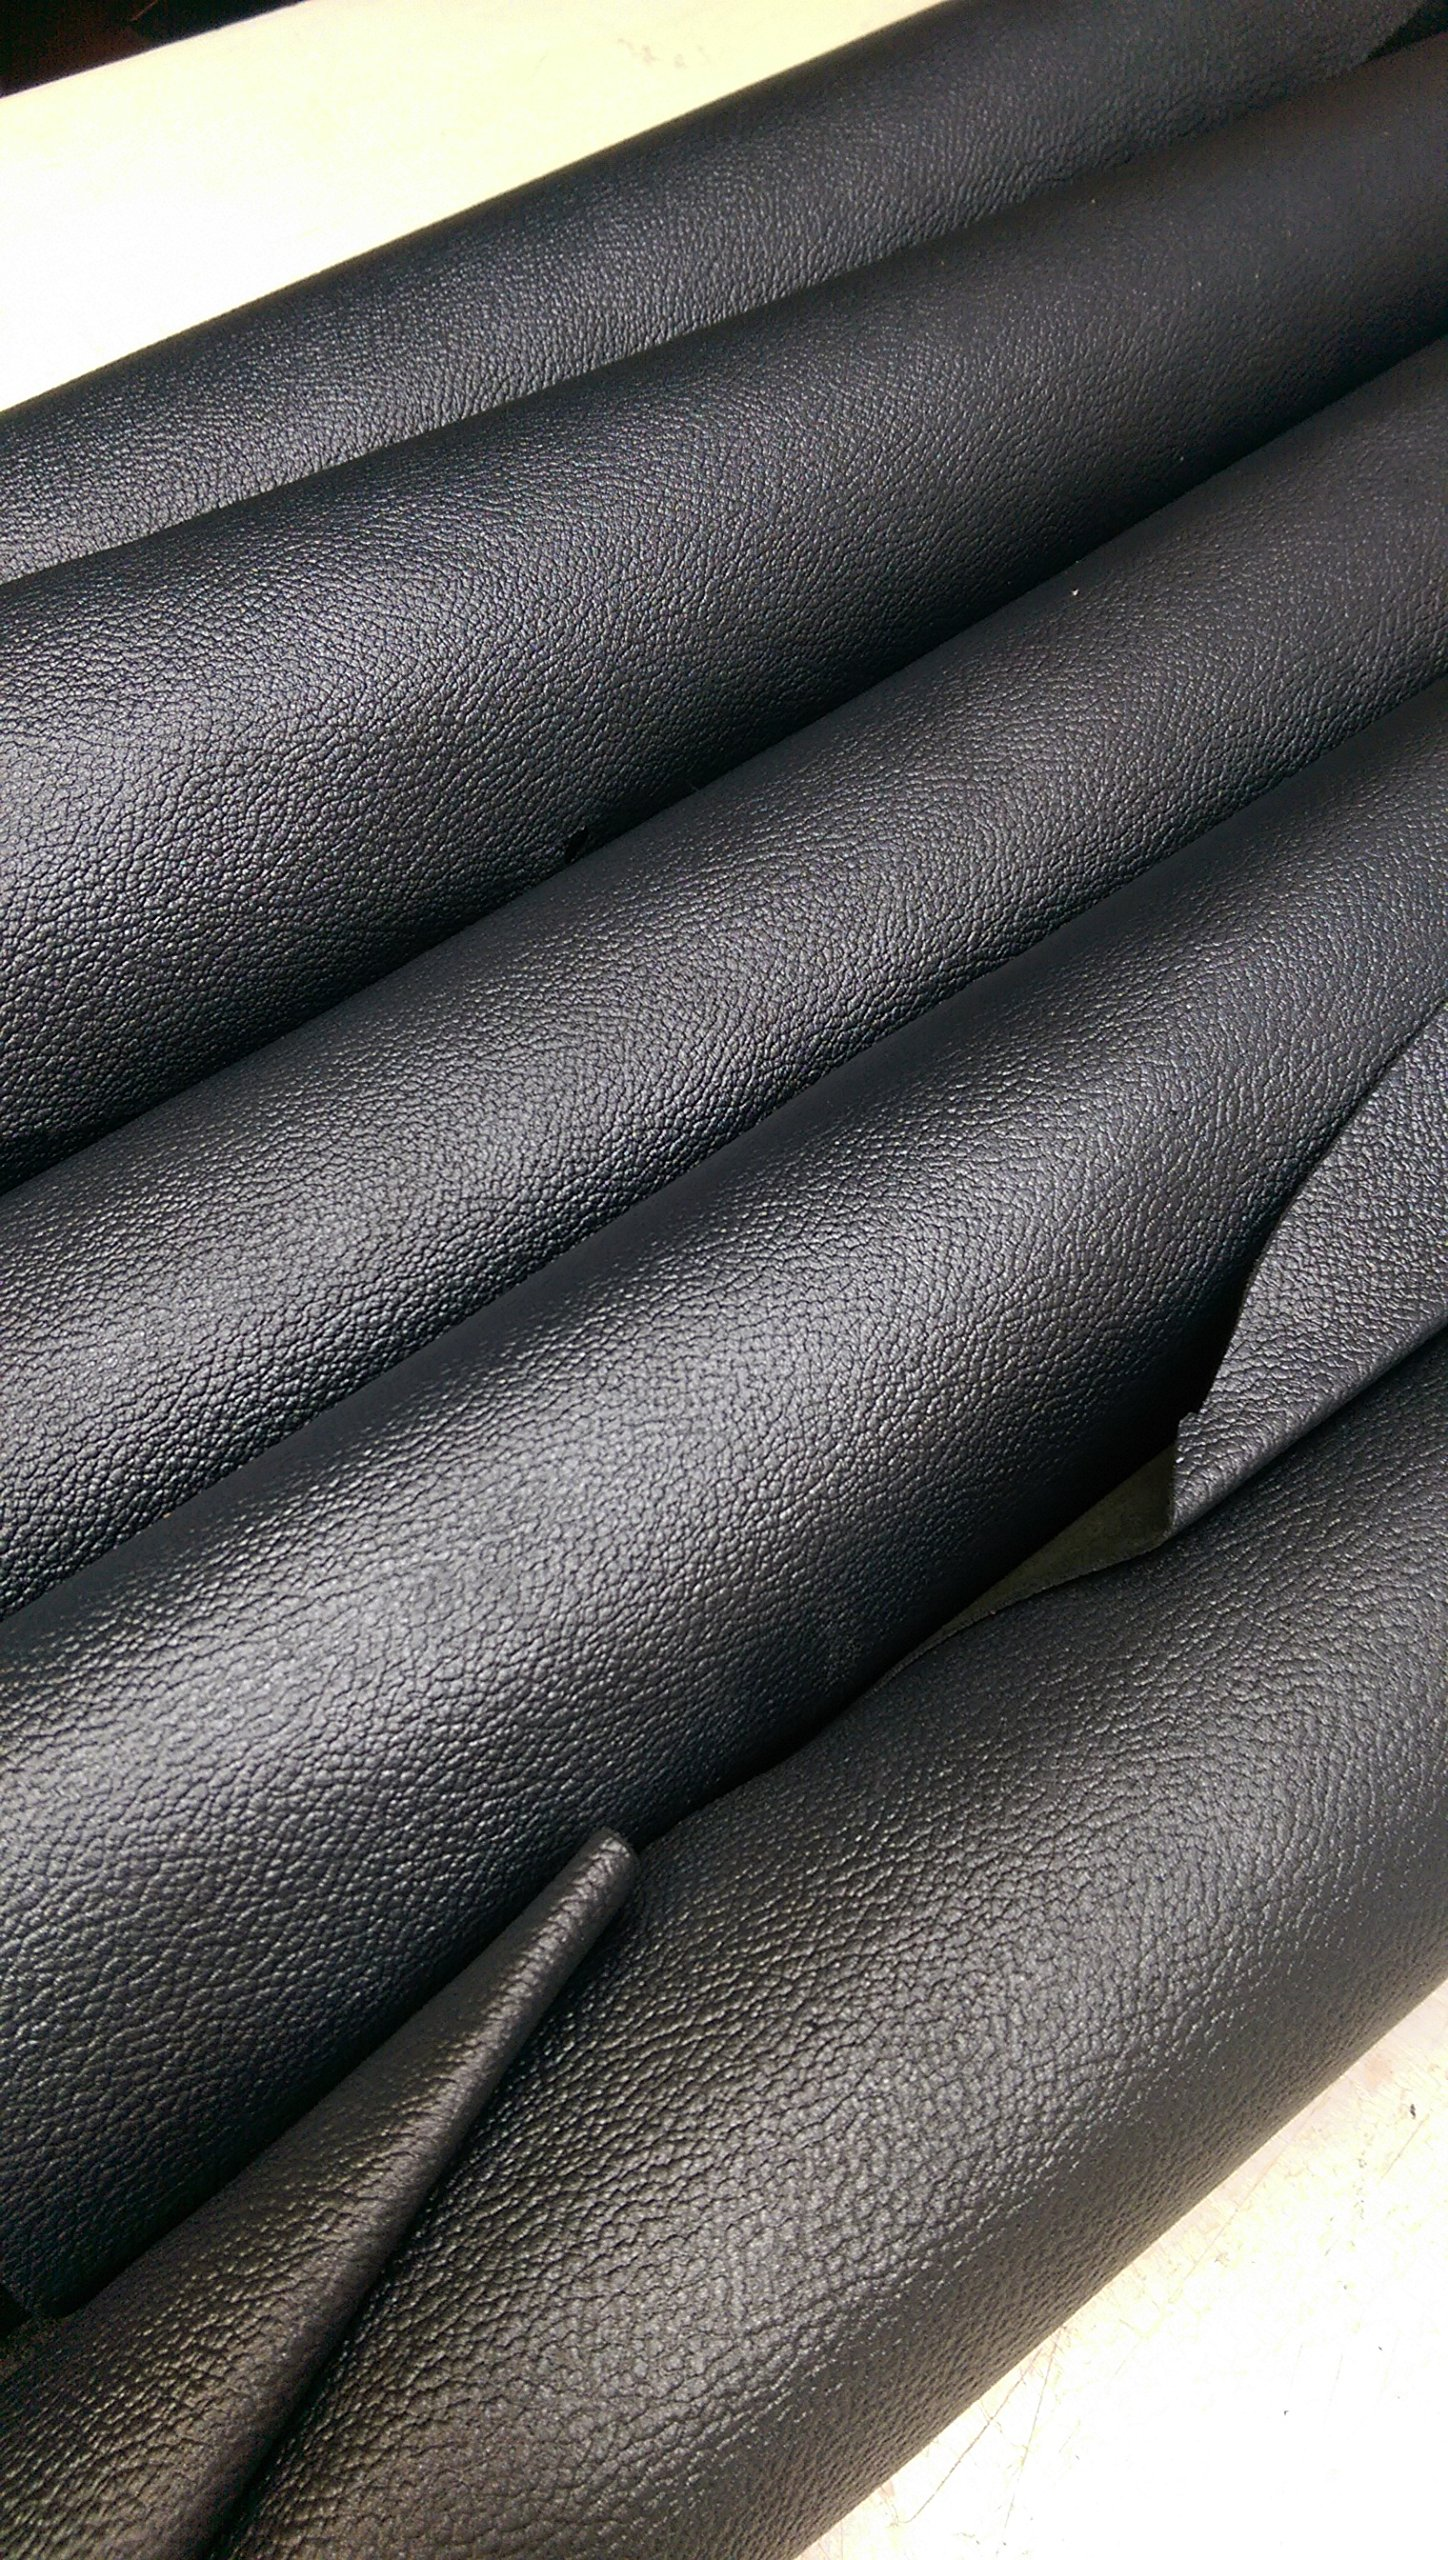 NAT Leathers Black Pearlized Dark Gray Embossed Pebblegrain 13-18 sq.ft (28 '' x 50'' ) 3 Oz Semi Firm Upholstery Craft Cowhide Genuine Leather Hide Skin 13 to 18 Square Feet (13-18 sq.ft.)